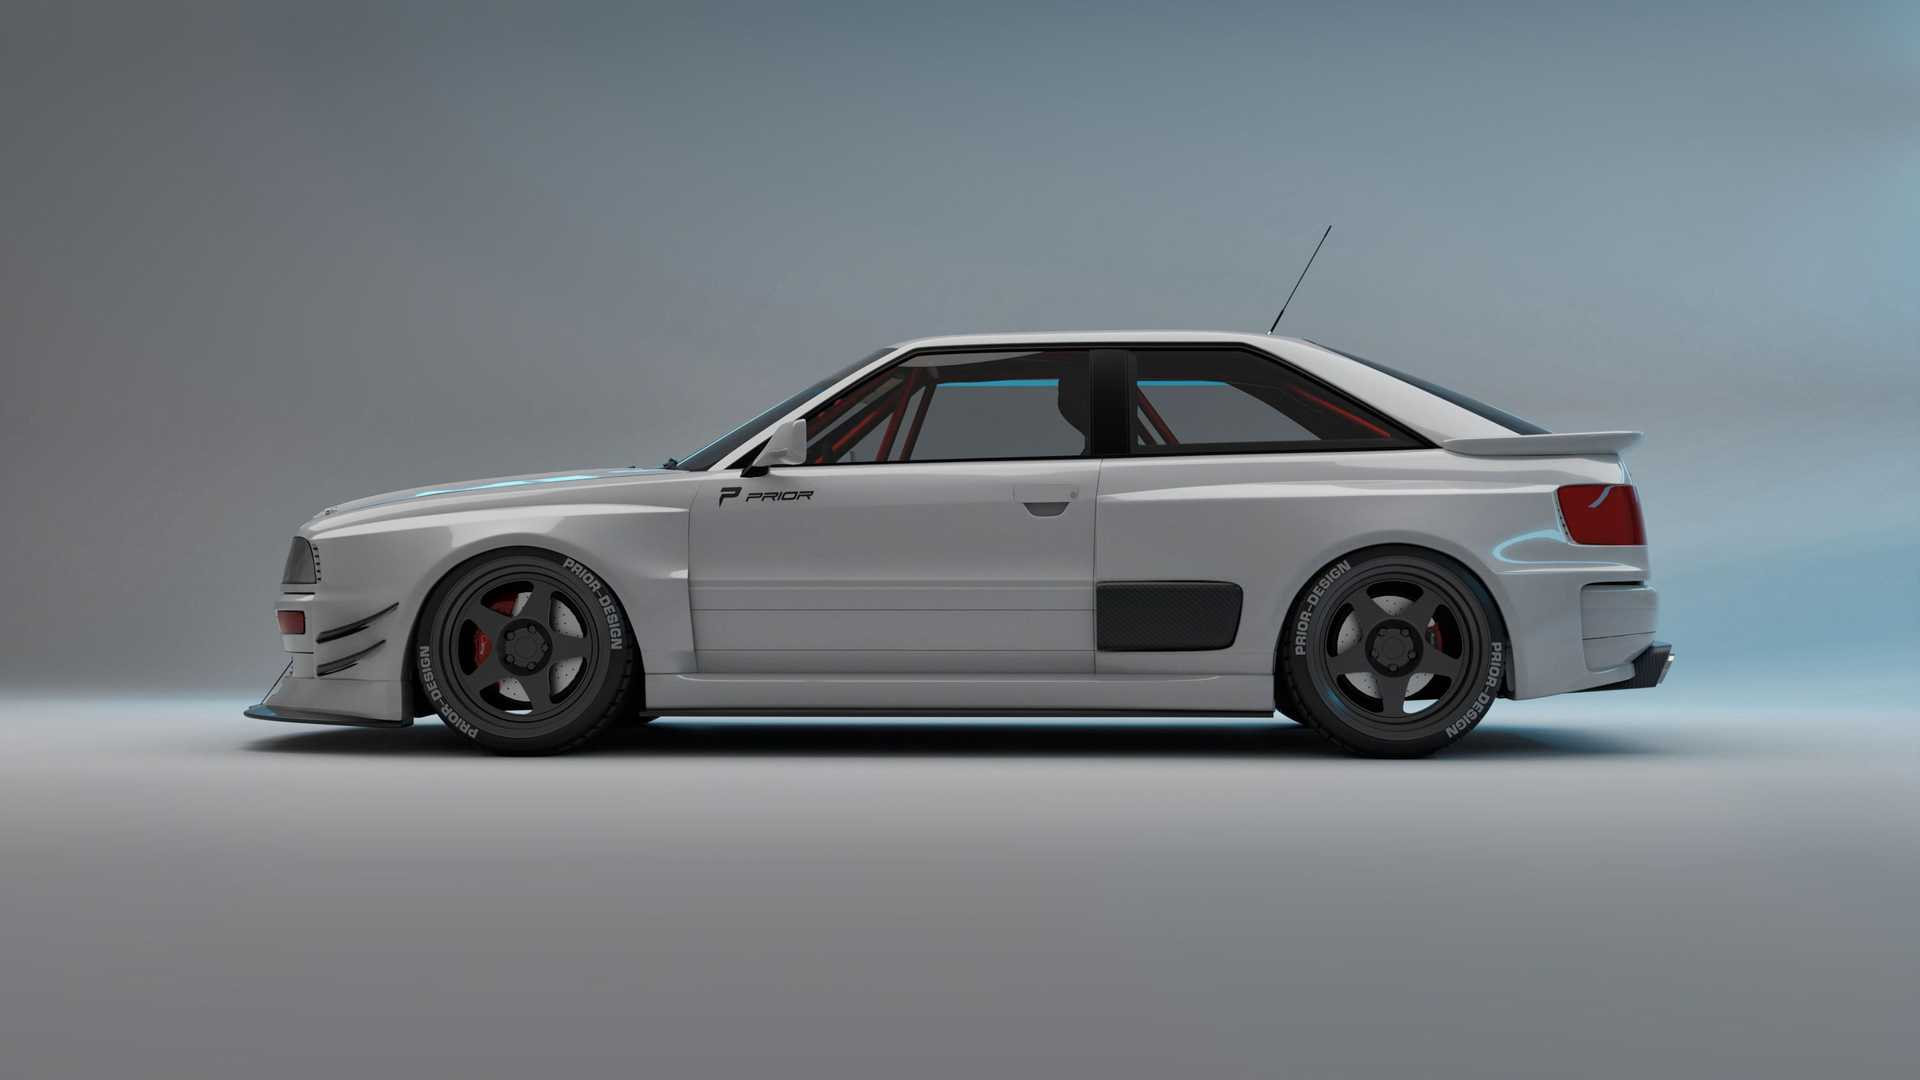 Audi Never Made An Rs2 Coupe So Prior Design Fixed That